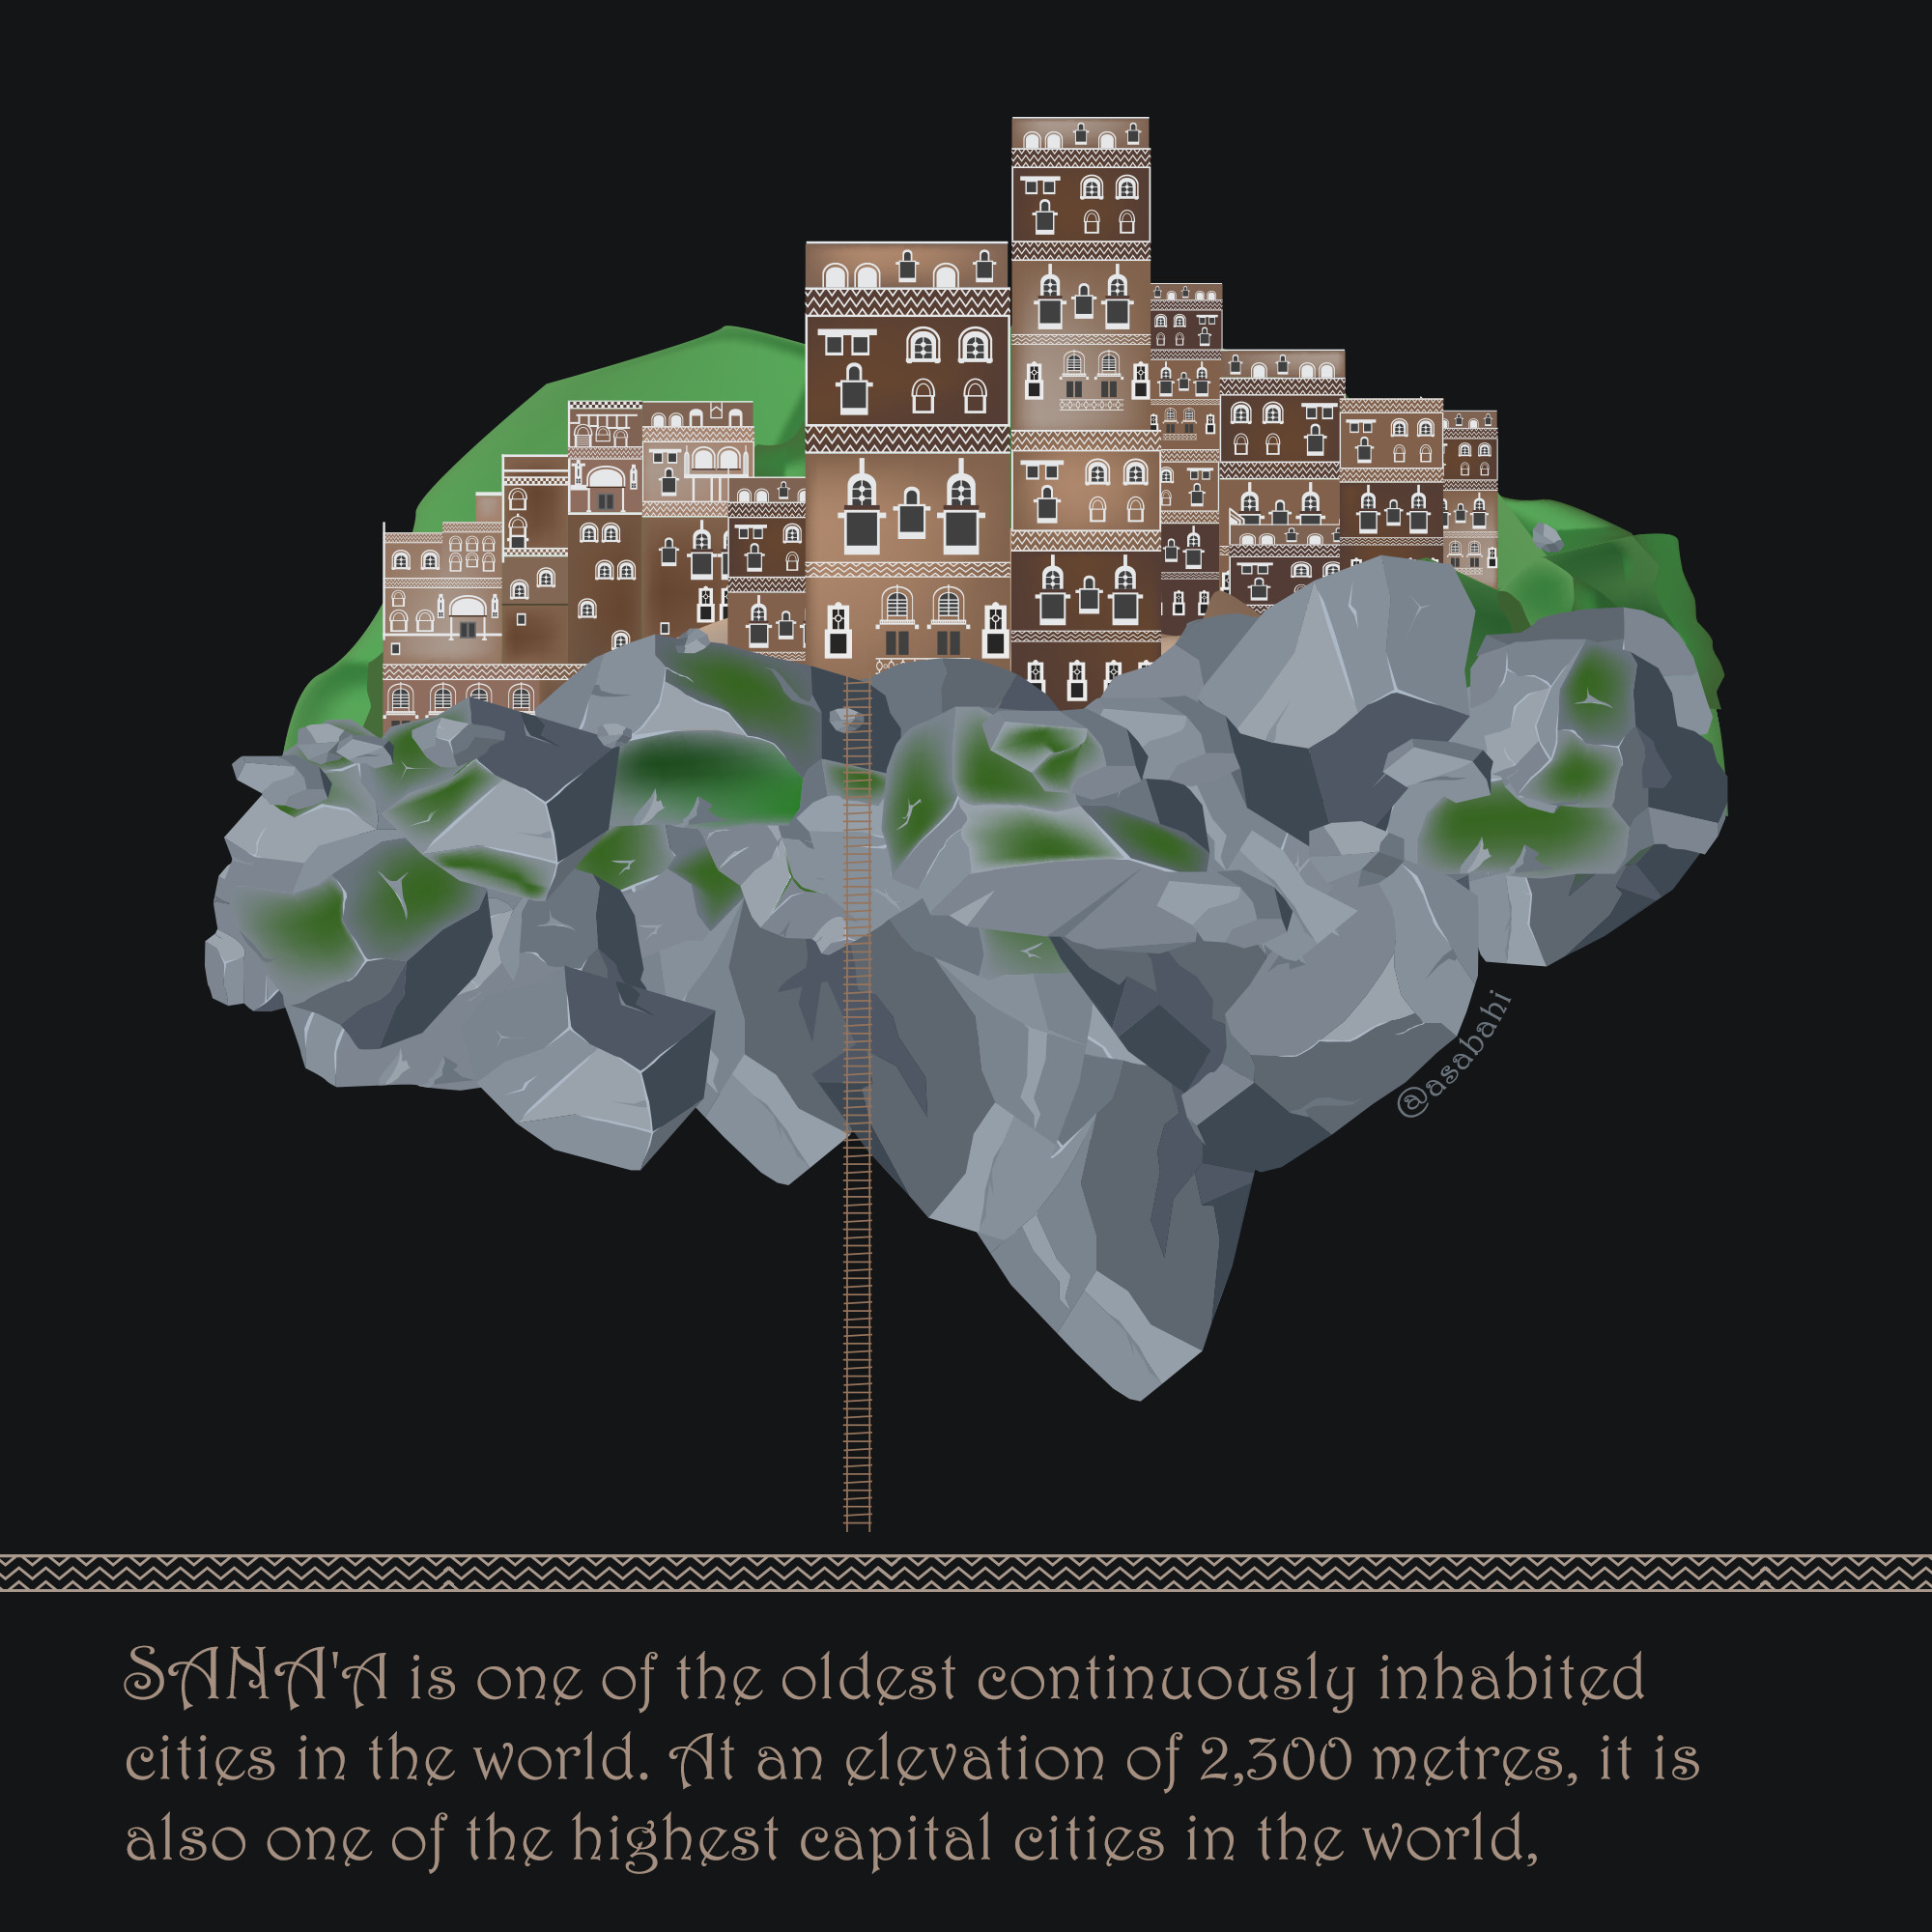 Sana'a is one of the oldest continuously inhabited cities in the world. At an elevation of 2,300 metres, it is also one of the highest capital cities in the world